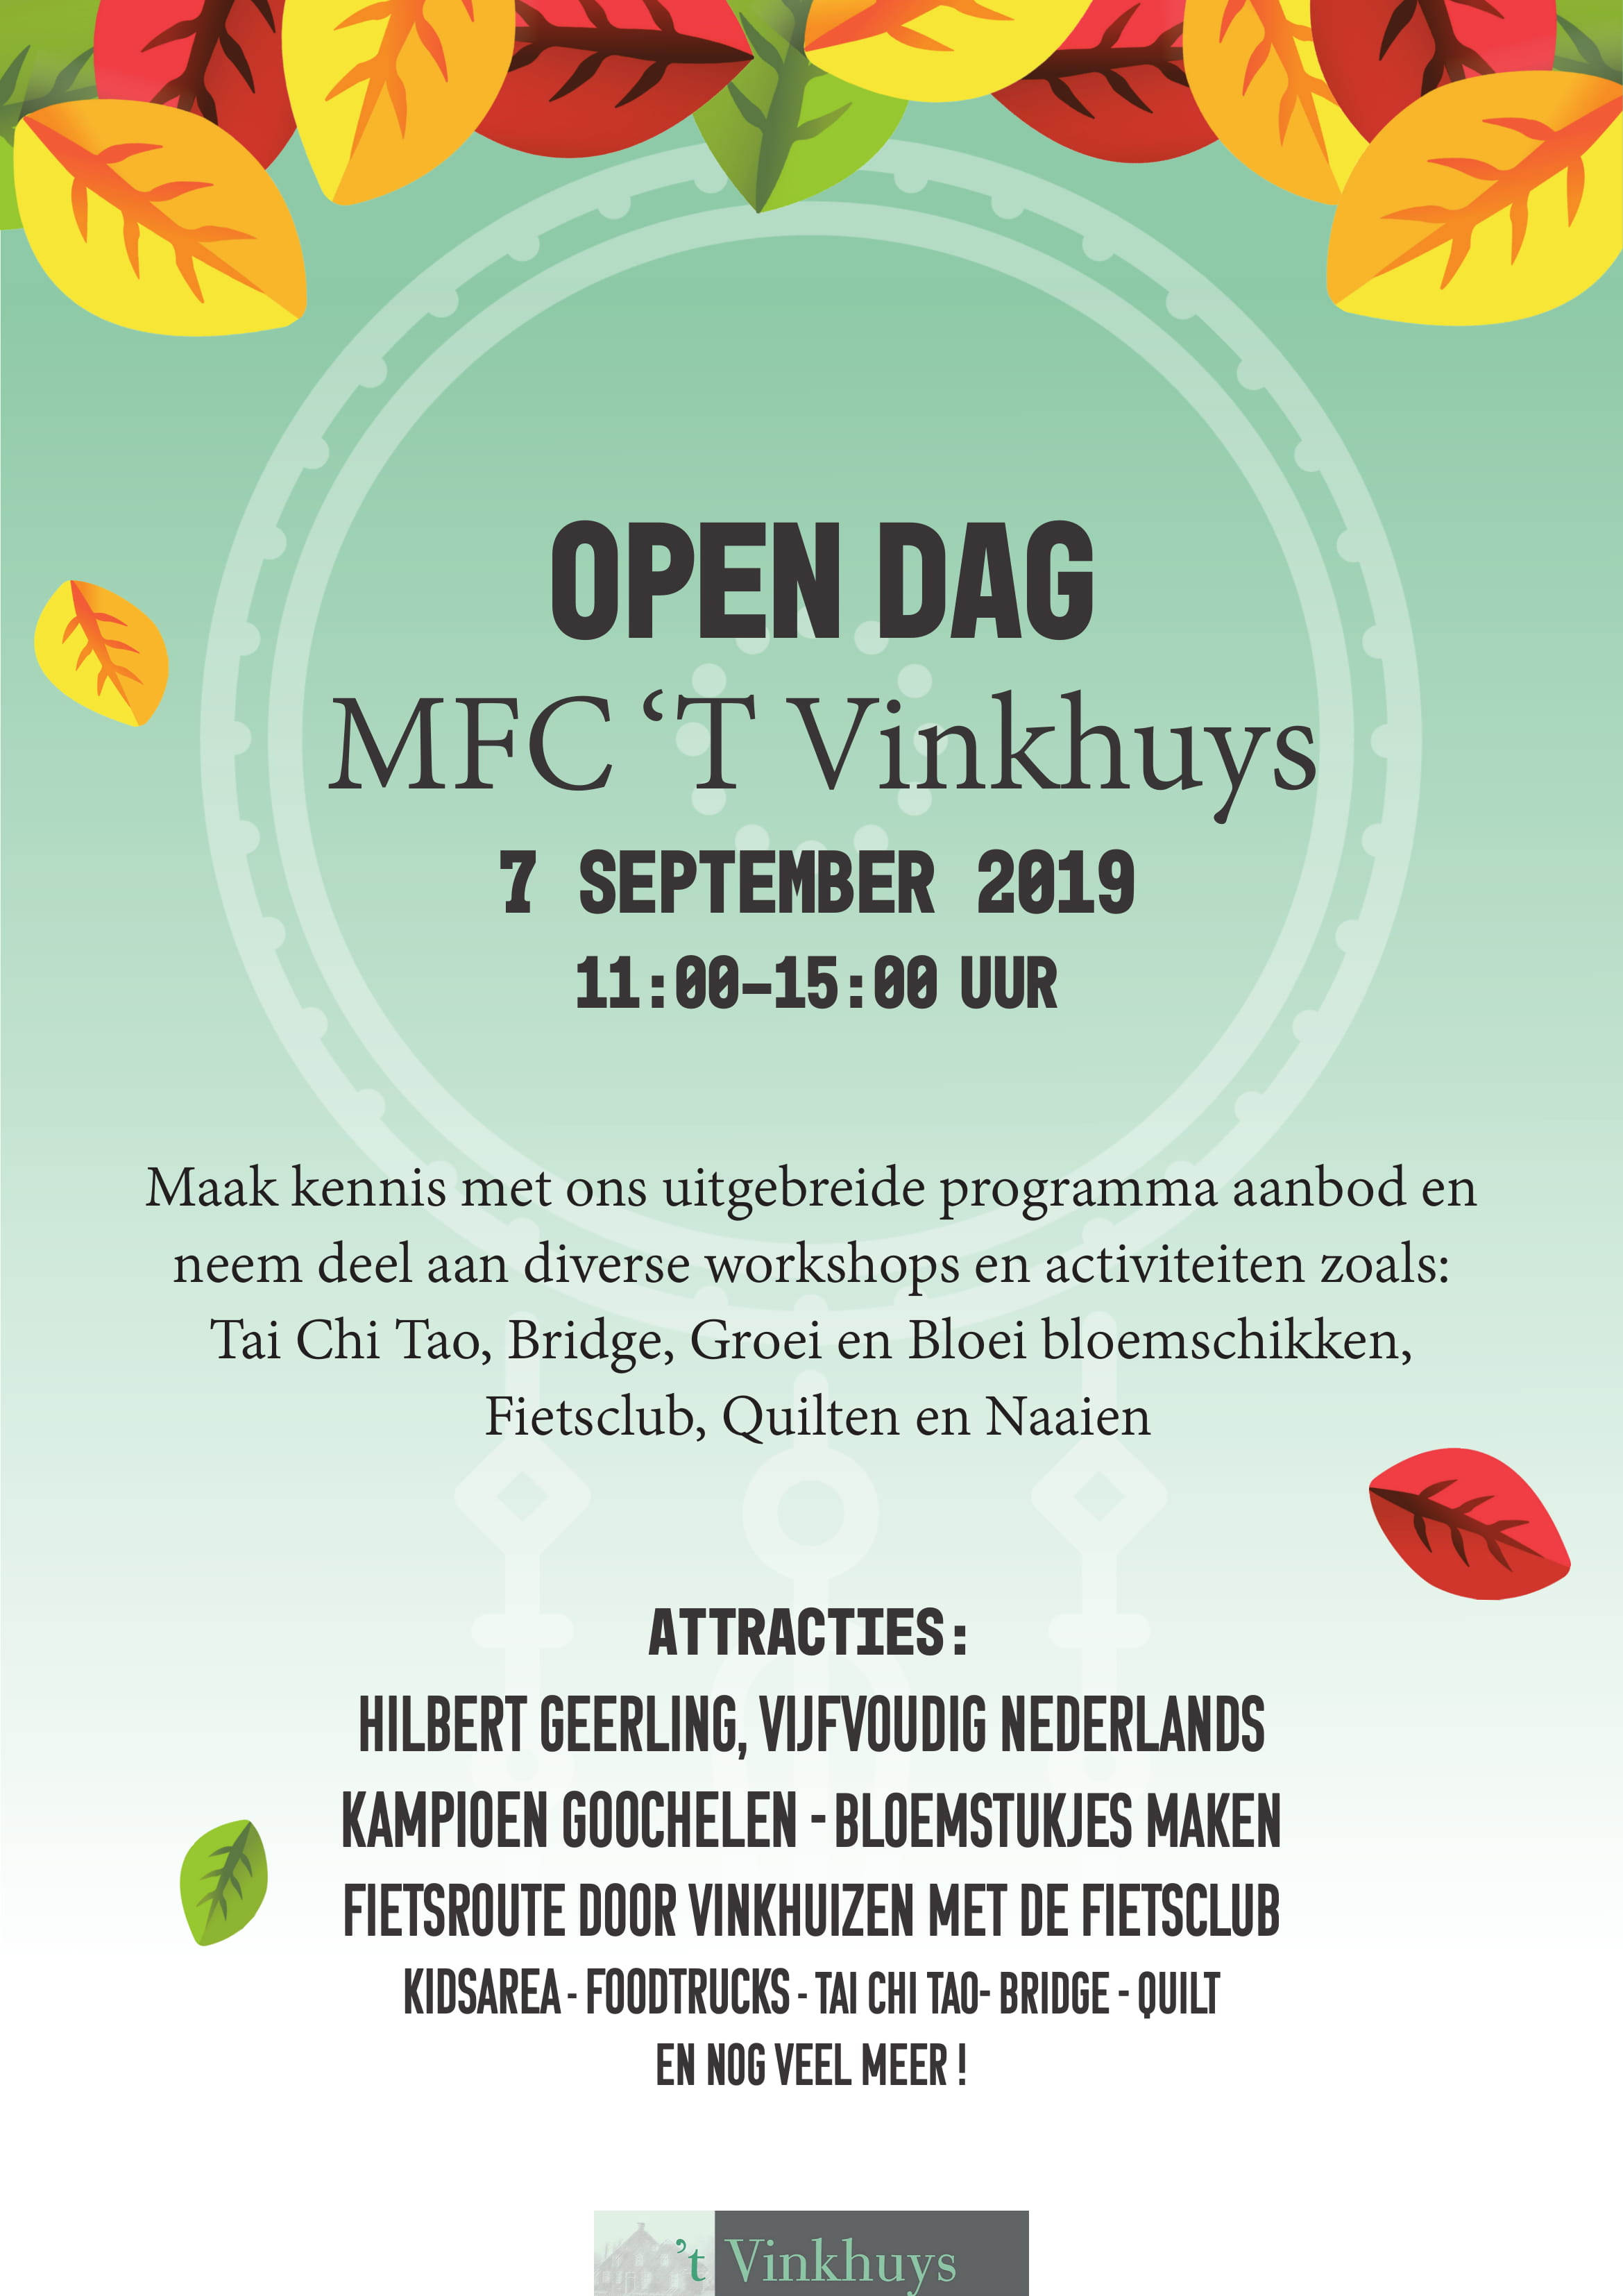 Opendag_Vinkhuys_Poster-1